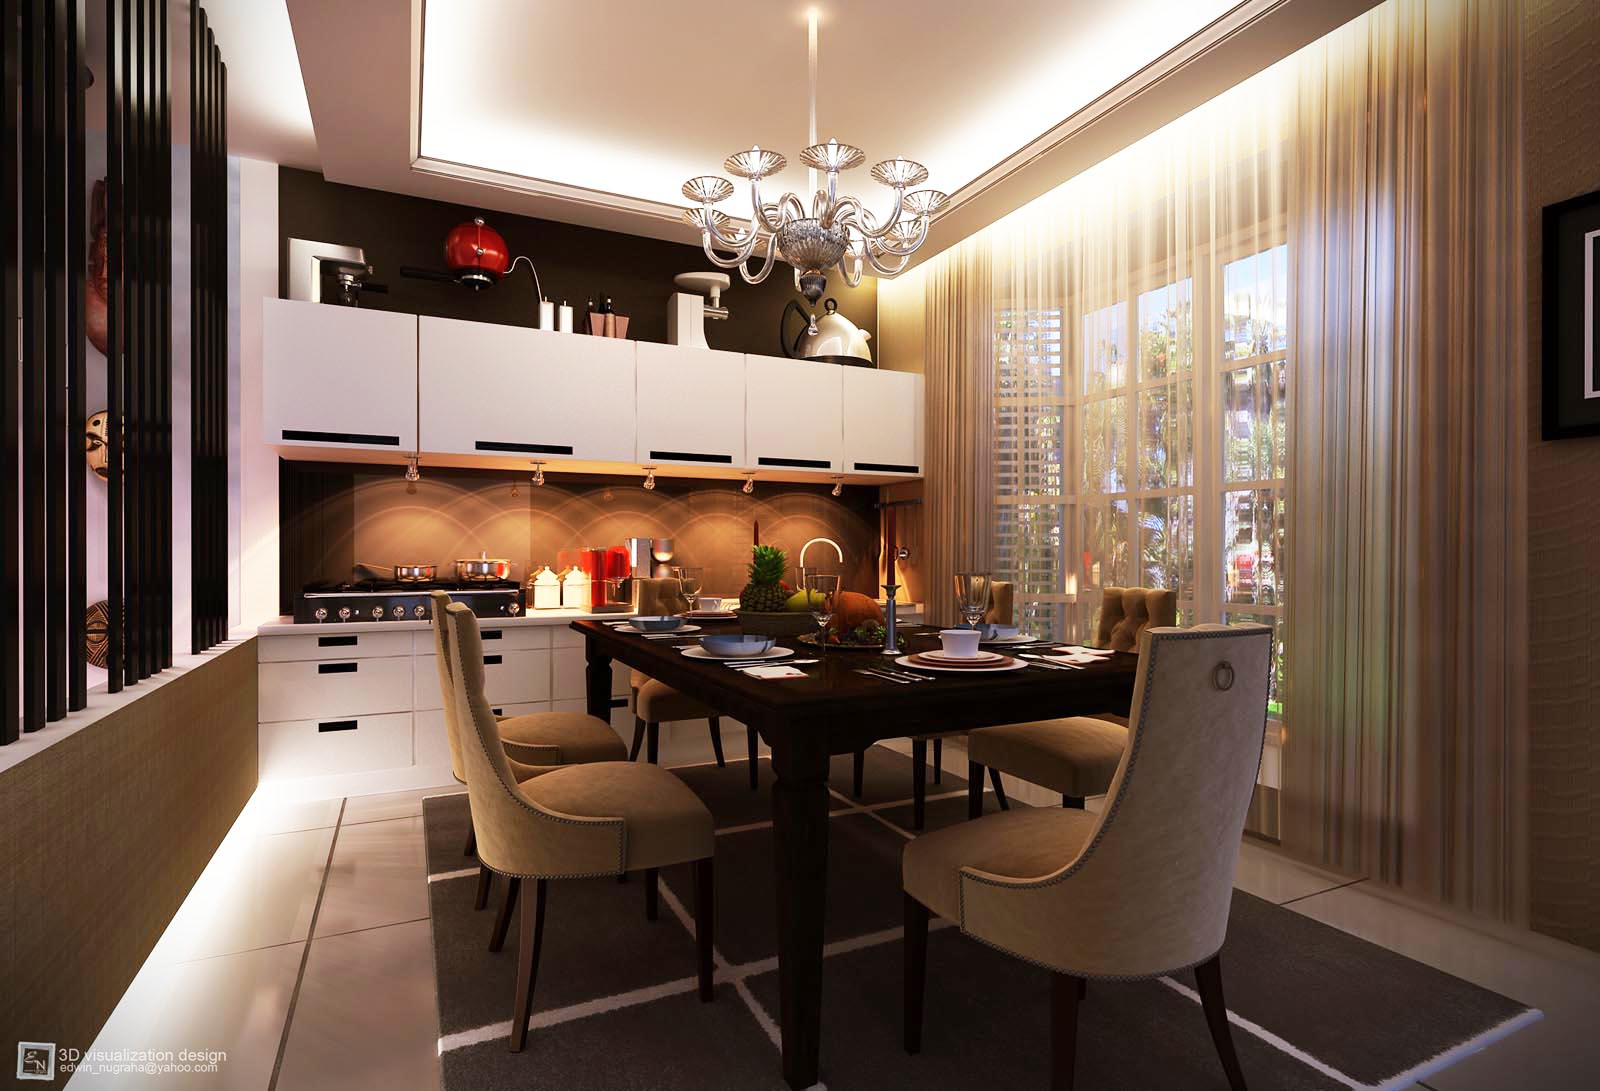 townhouse_dining_room_by_vad_endz-d3bouw2